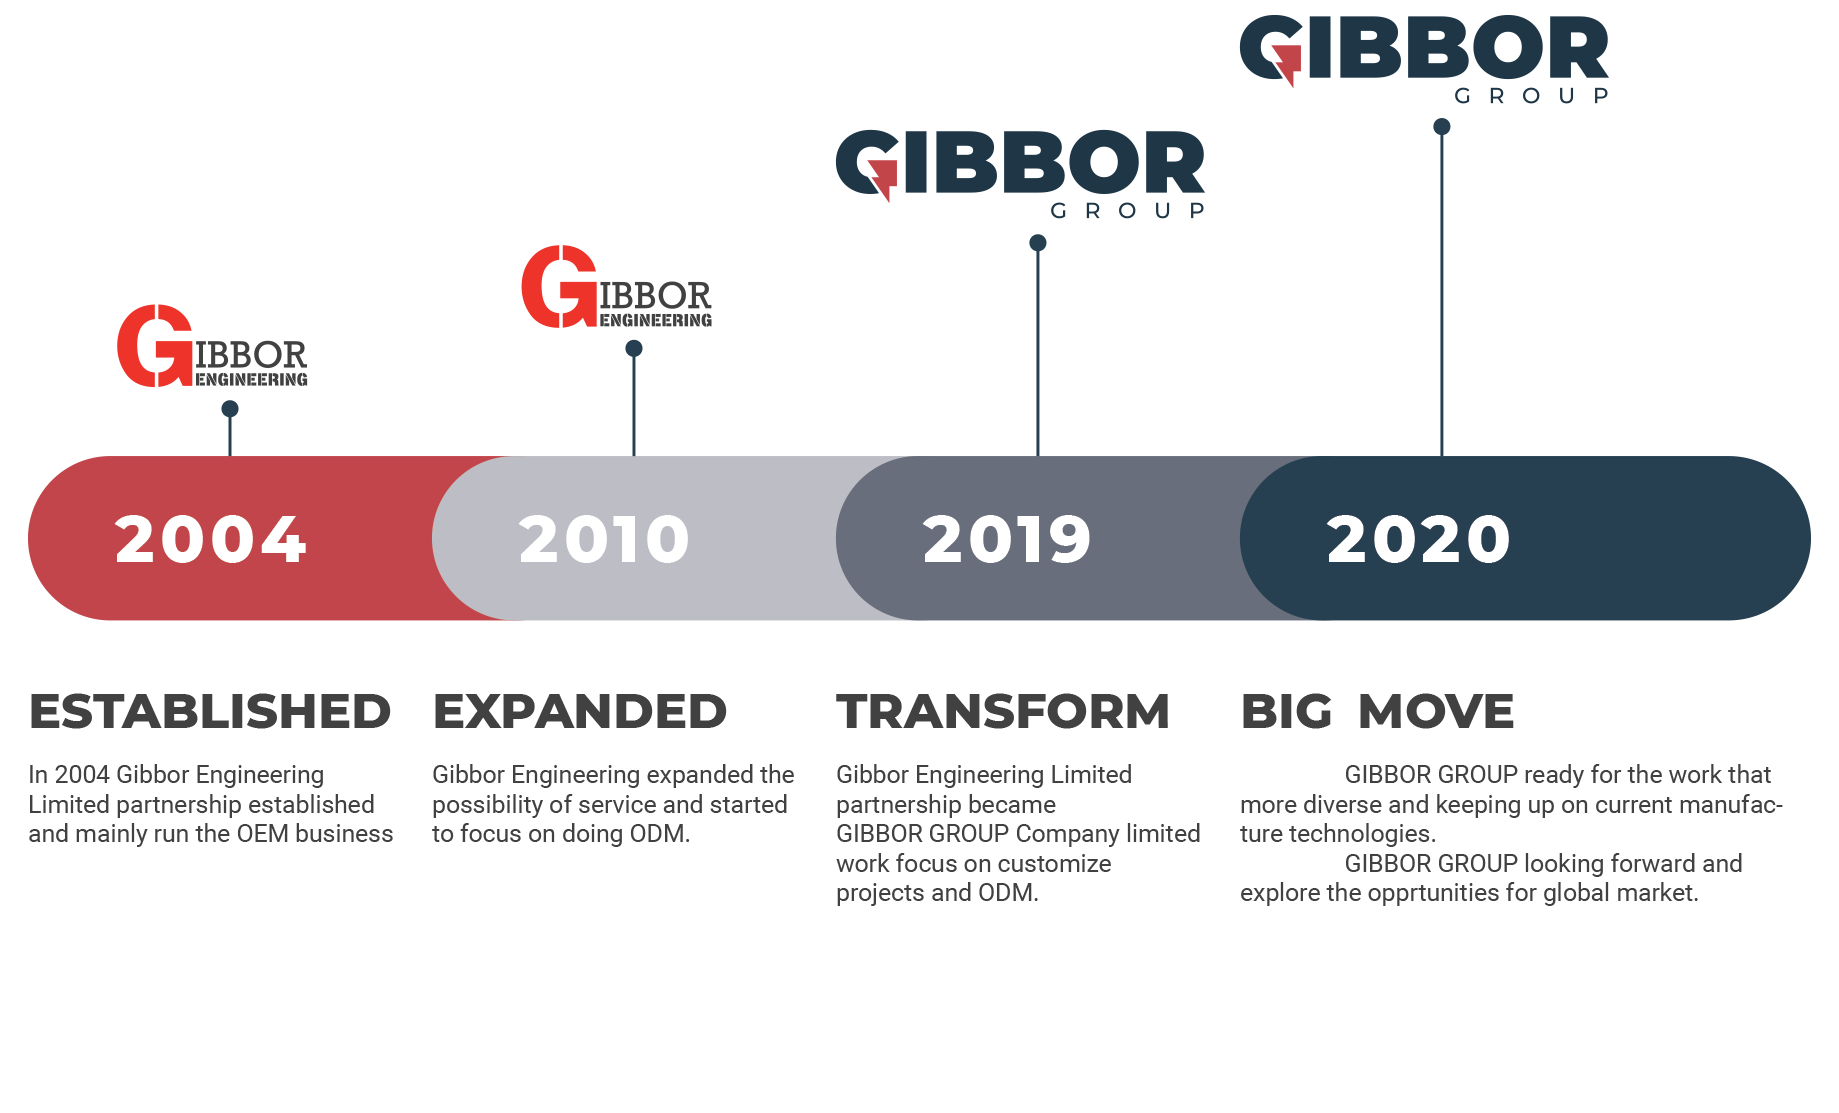 History of Gibbor group